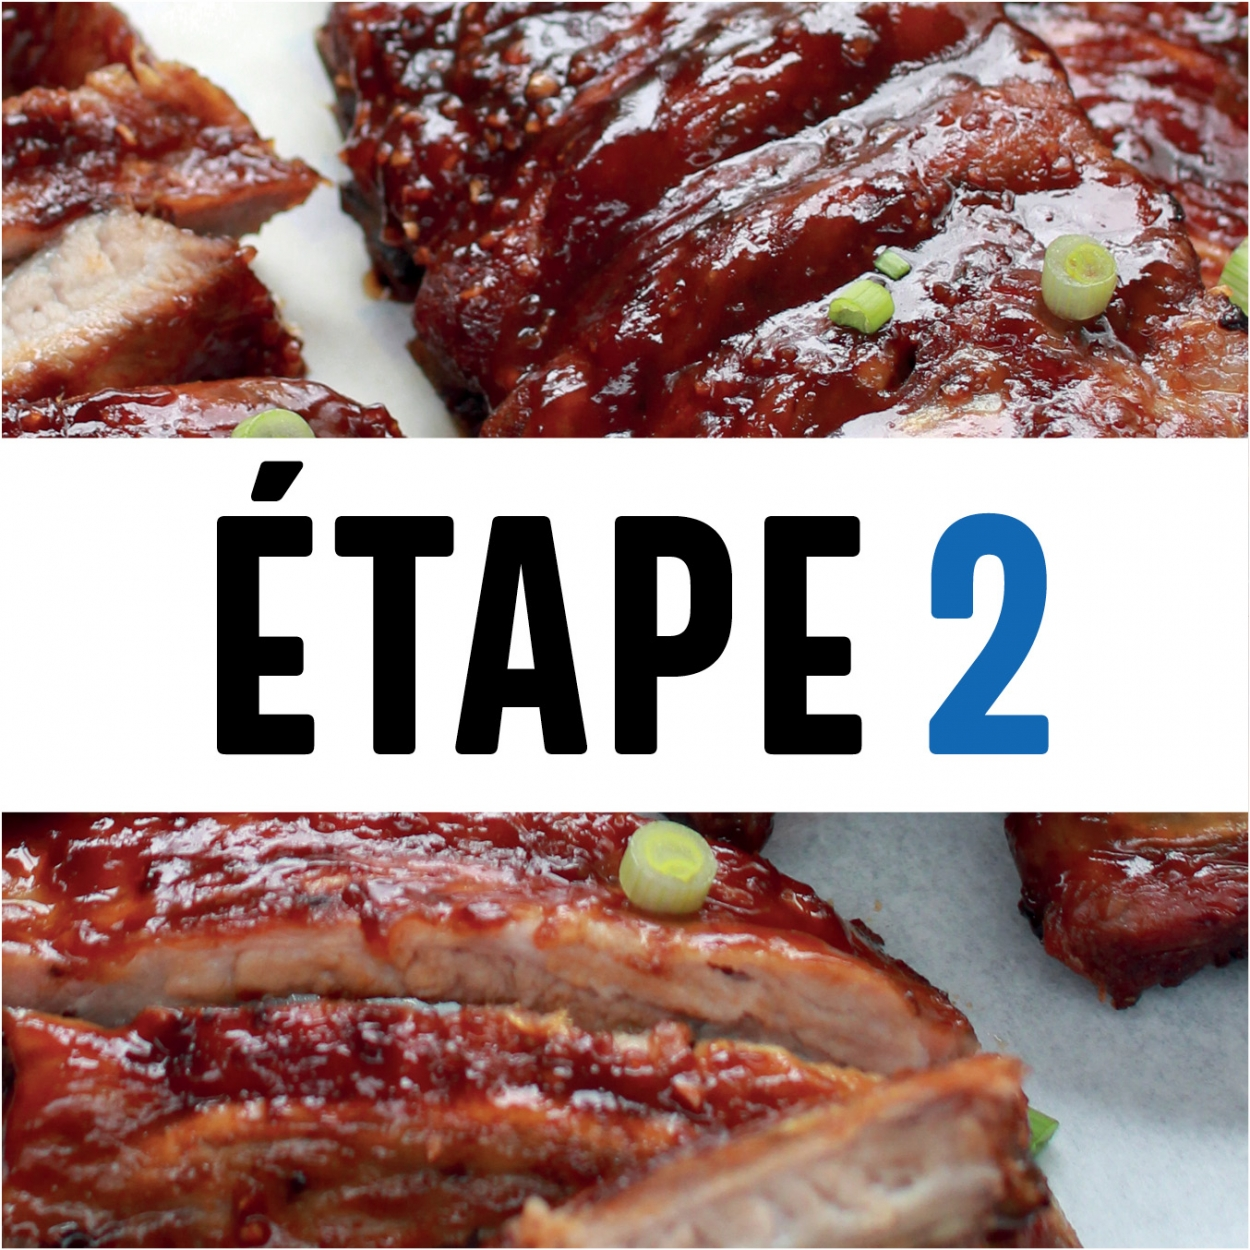 Slow cooking étape 2